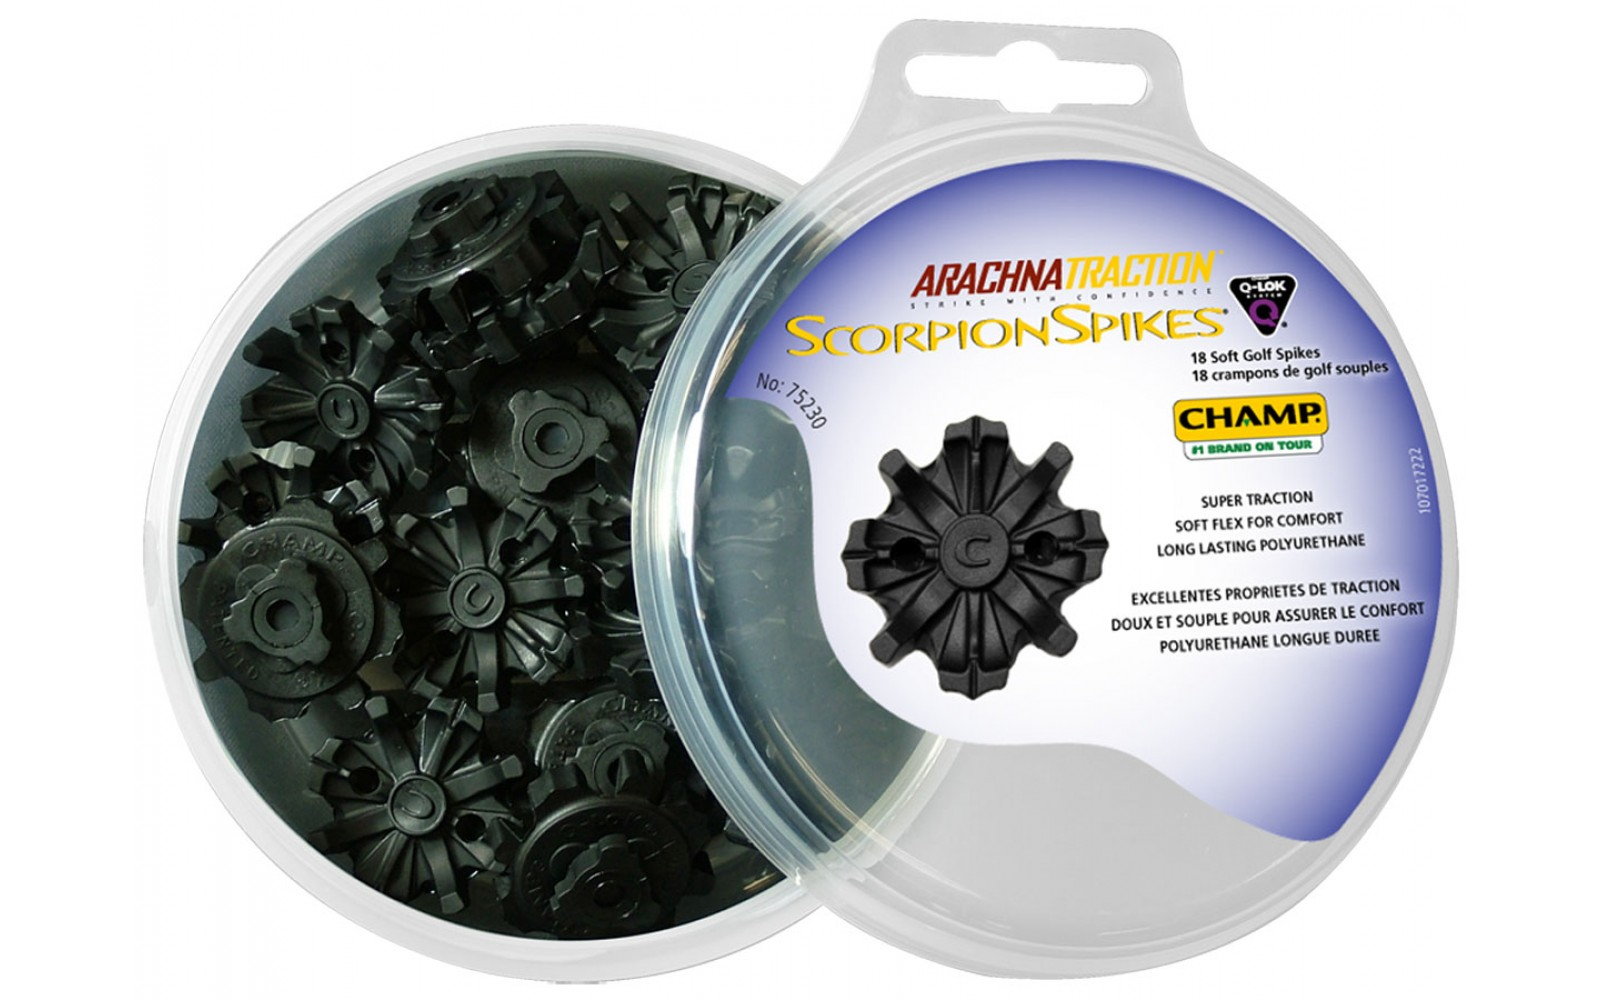 Champ Scorpion Spikes disk